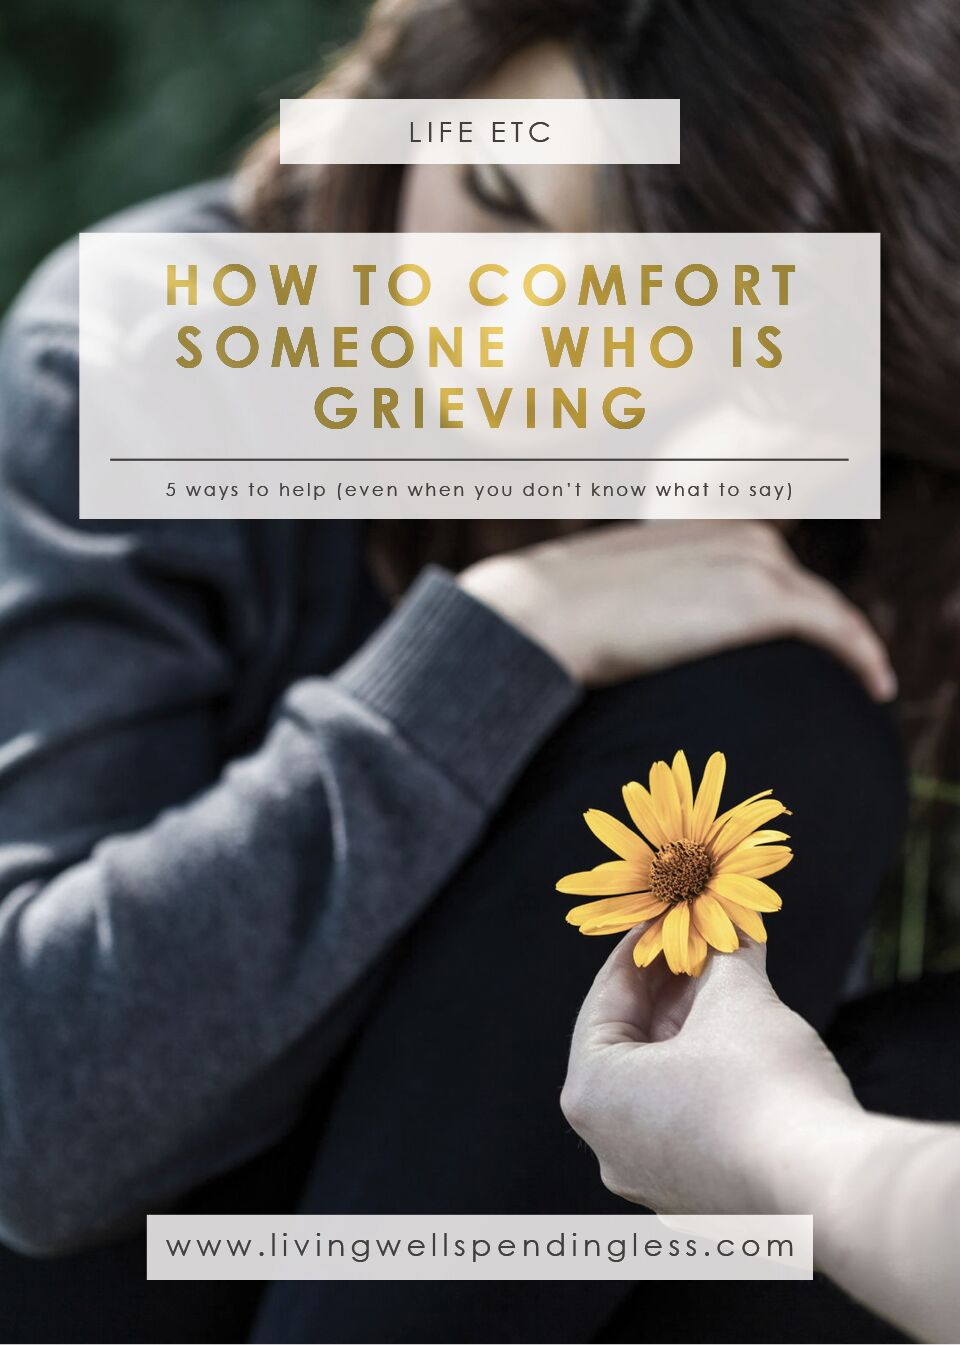 ow to comfort someone who is grieving: 5 ways to help (even when you don't know what to say).